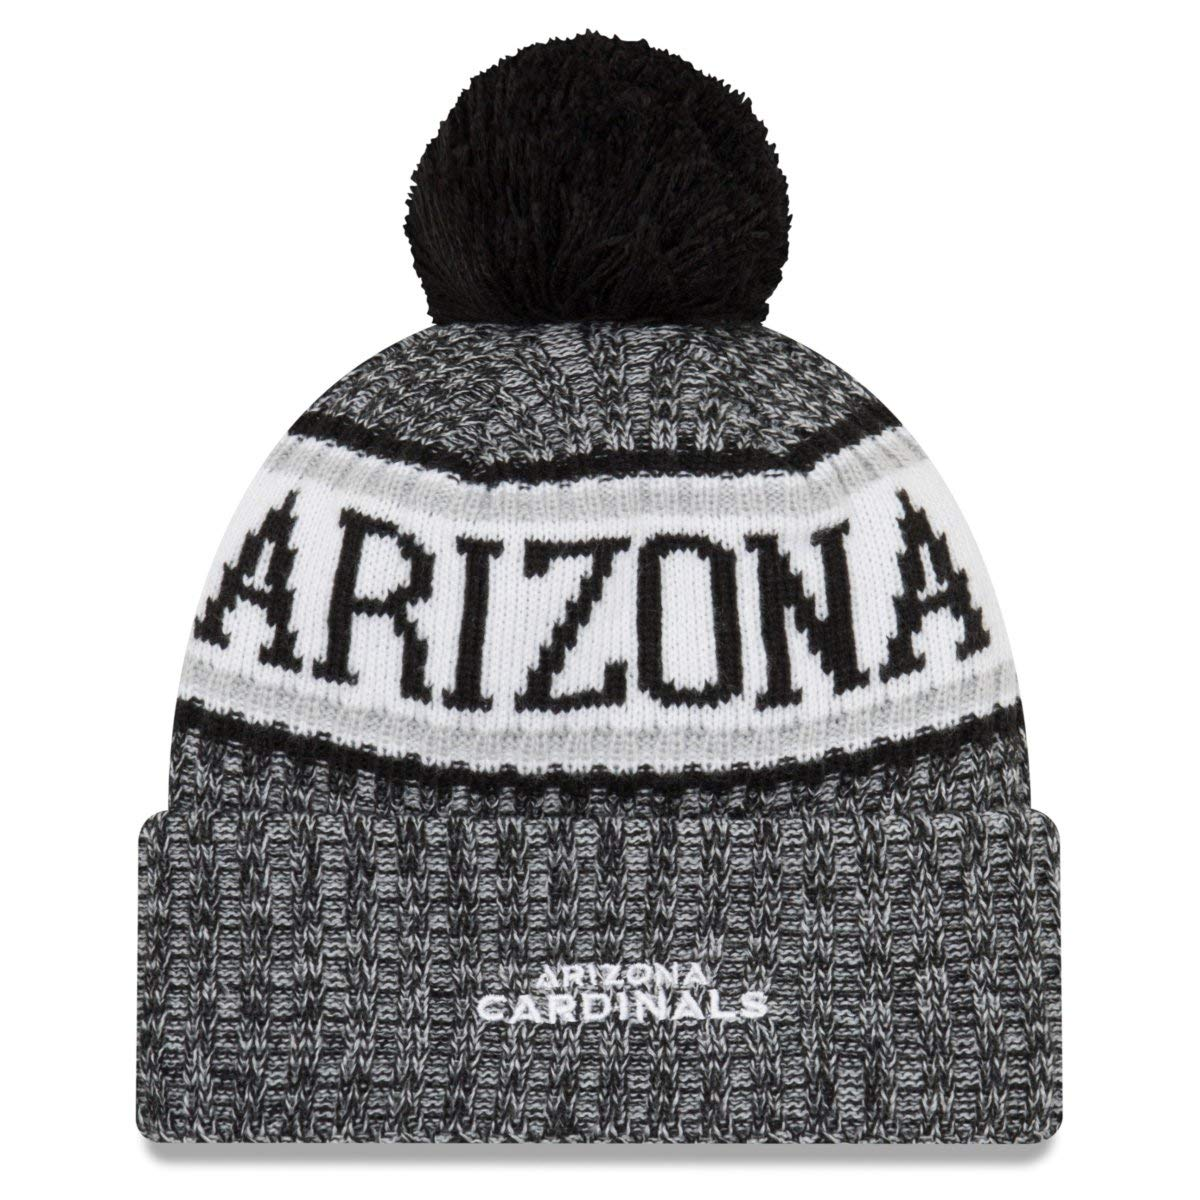 c8838867fb8 Amazon.com   New Era Arizona Cardinals Black   White Sport Knit NFL 2018  Beanie Unisex Hat